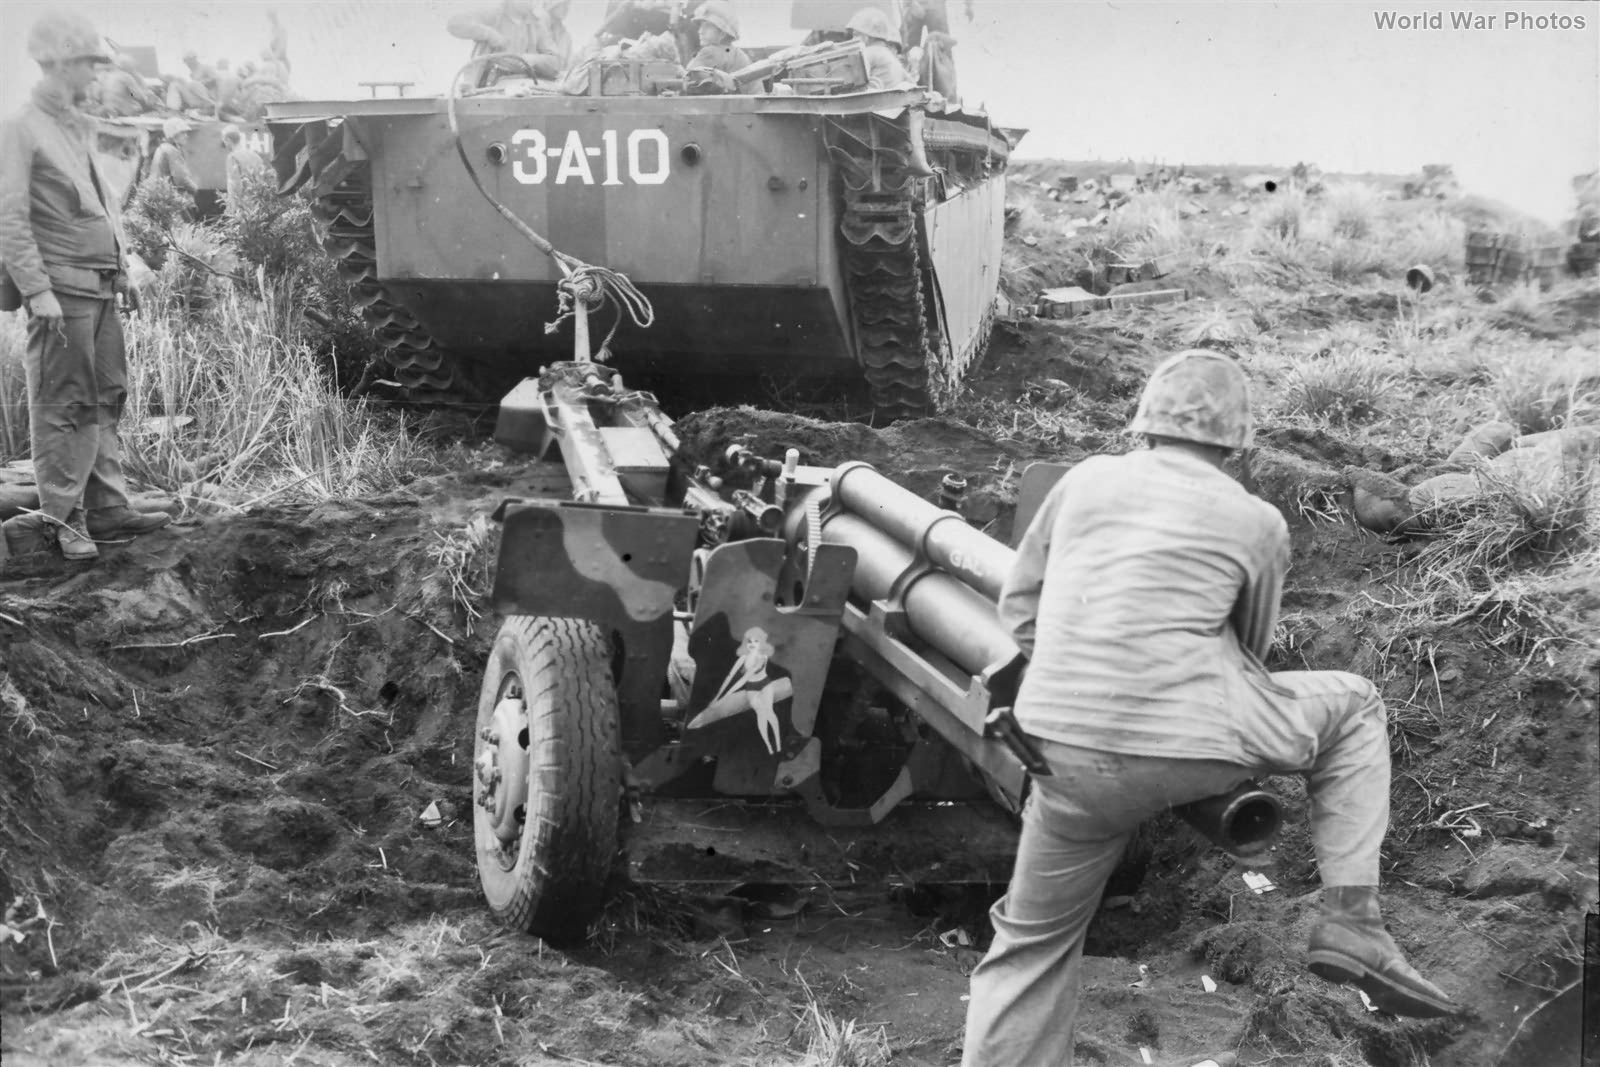 Marine 105mm Howitzer towed by LVT Iwo Jima 23feb